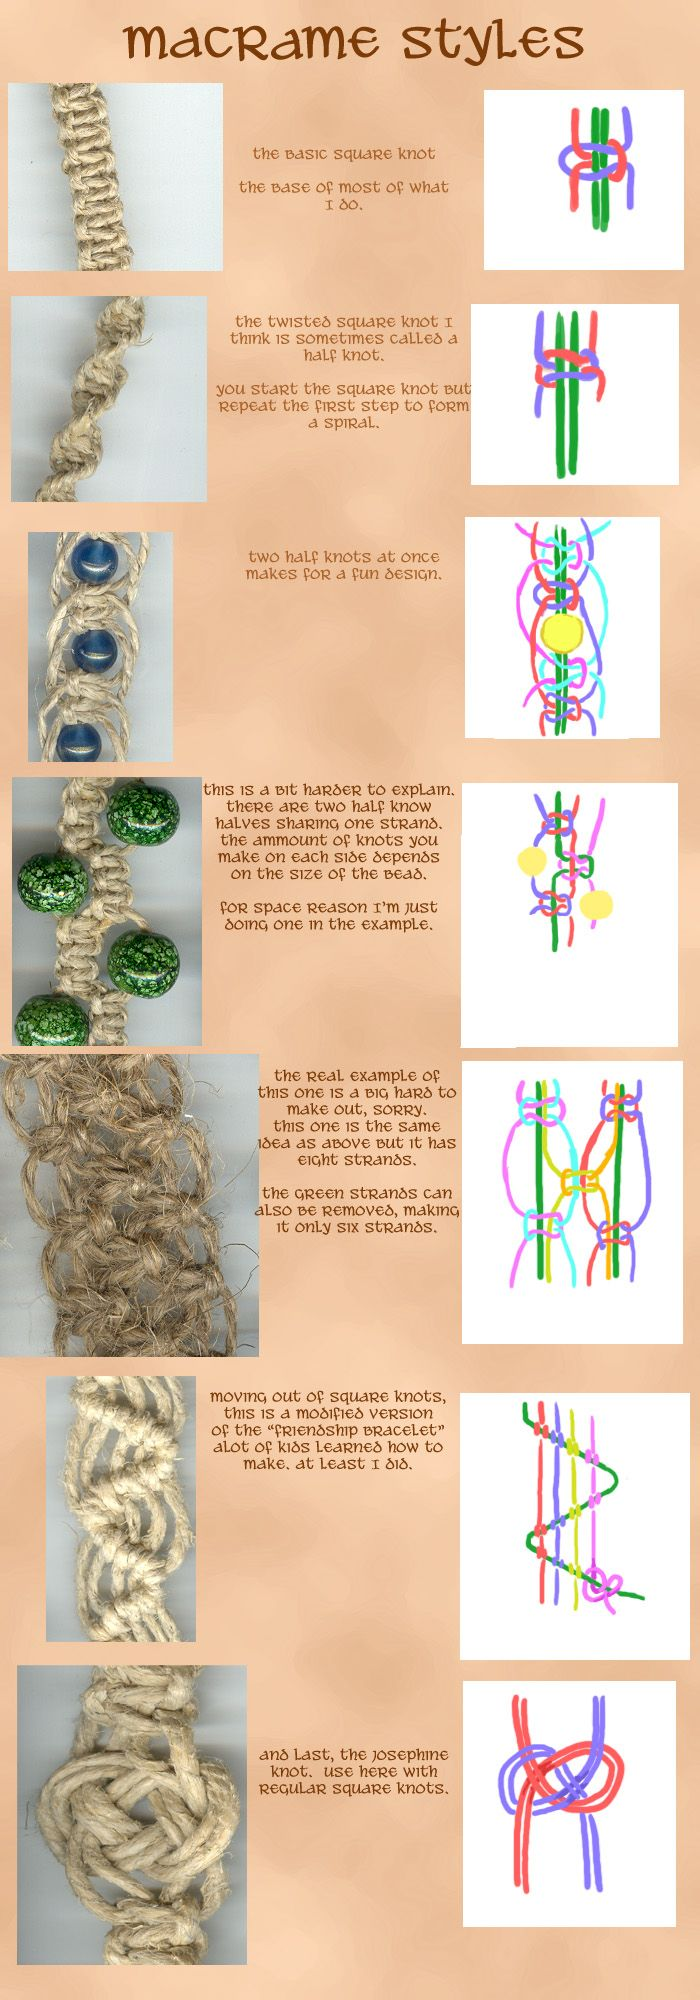 Macrame styles! Have to make some of these differentones